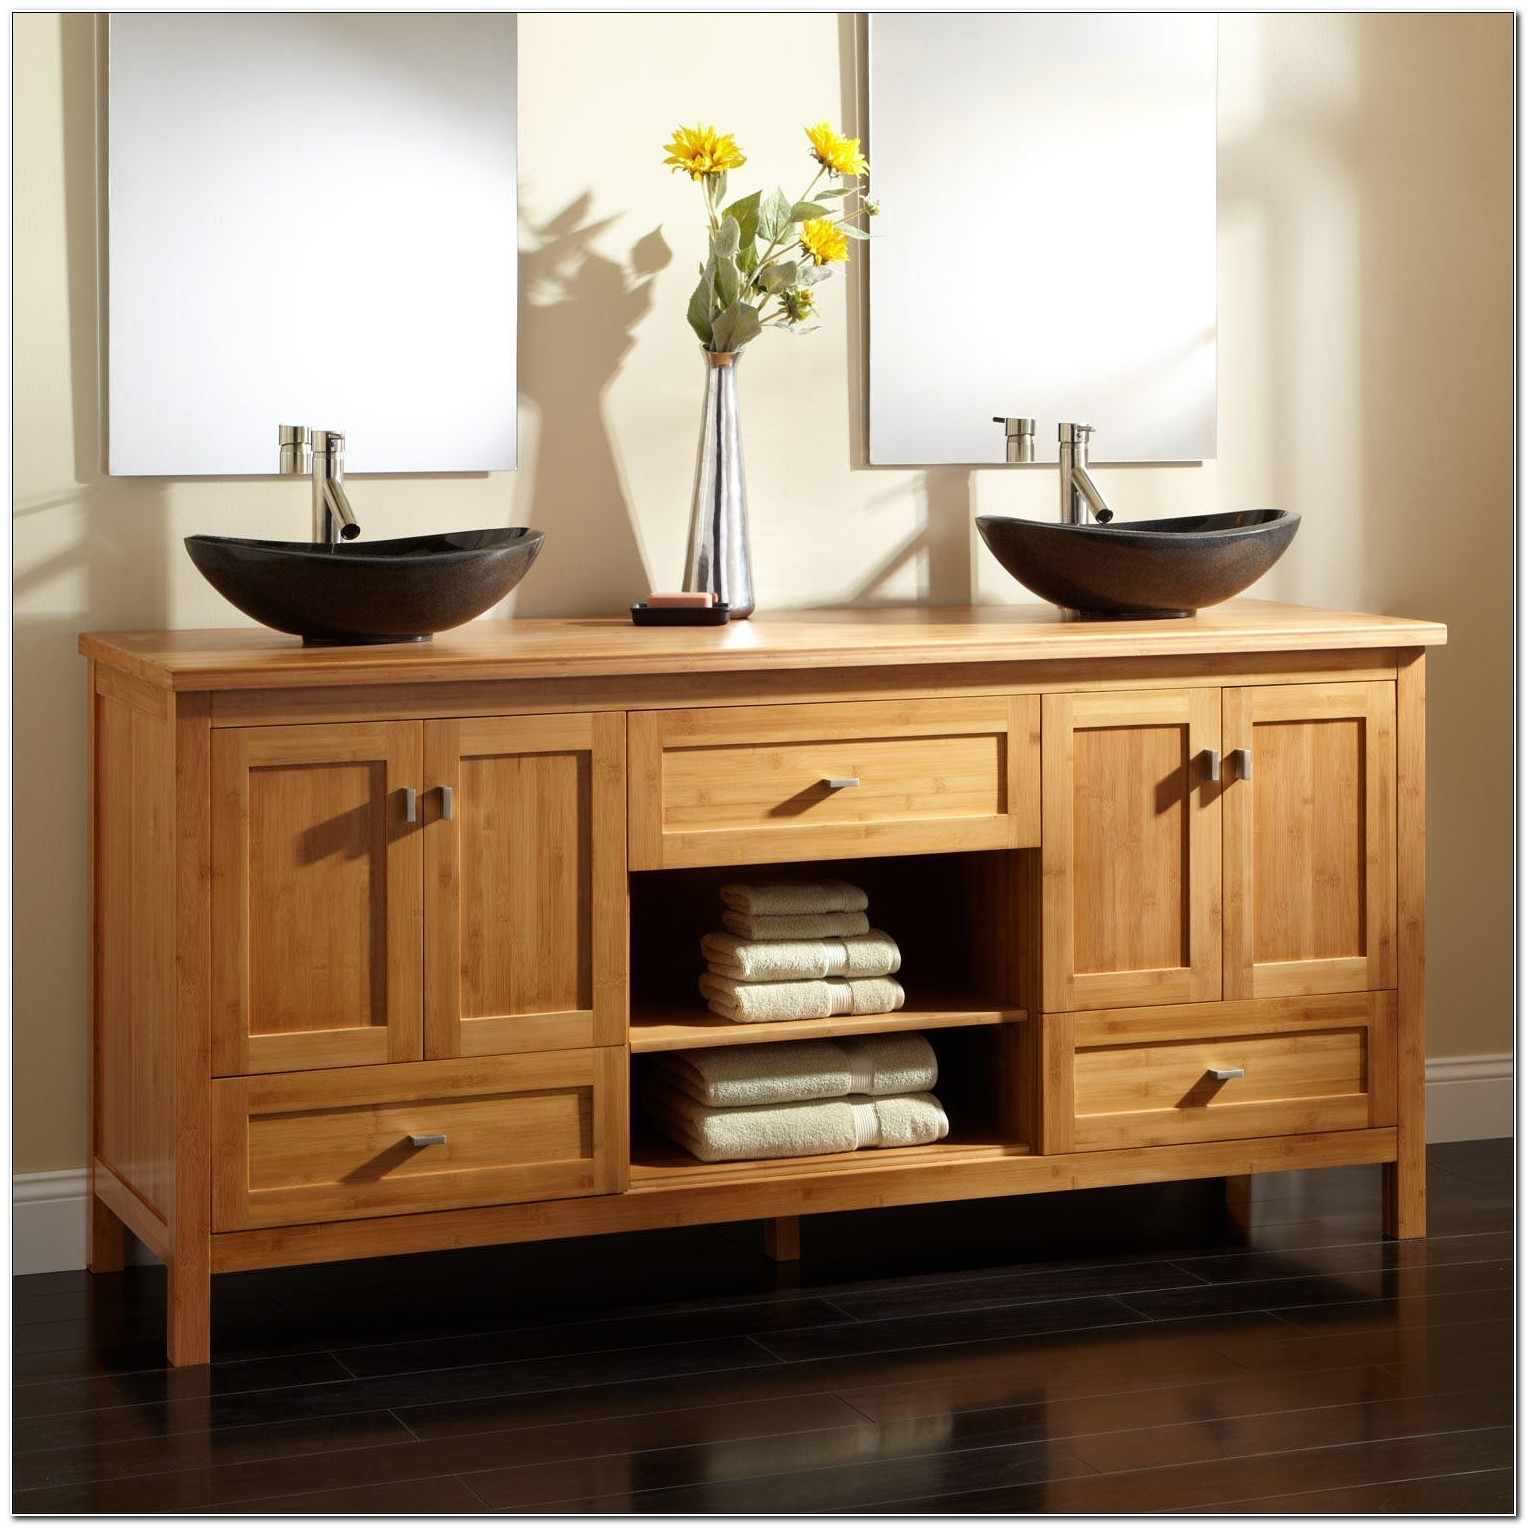 Sink With Vanity Cabinet